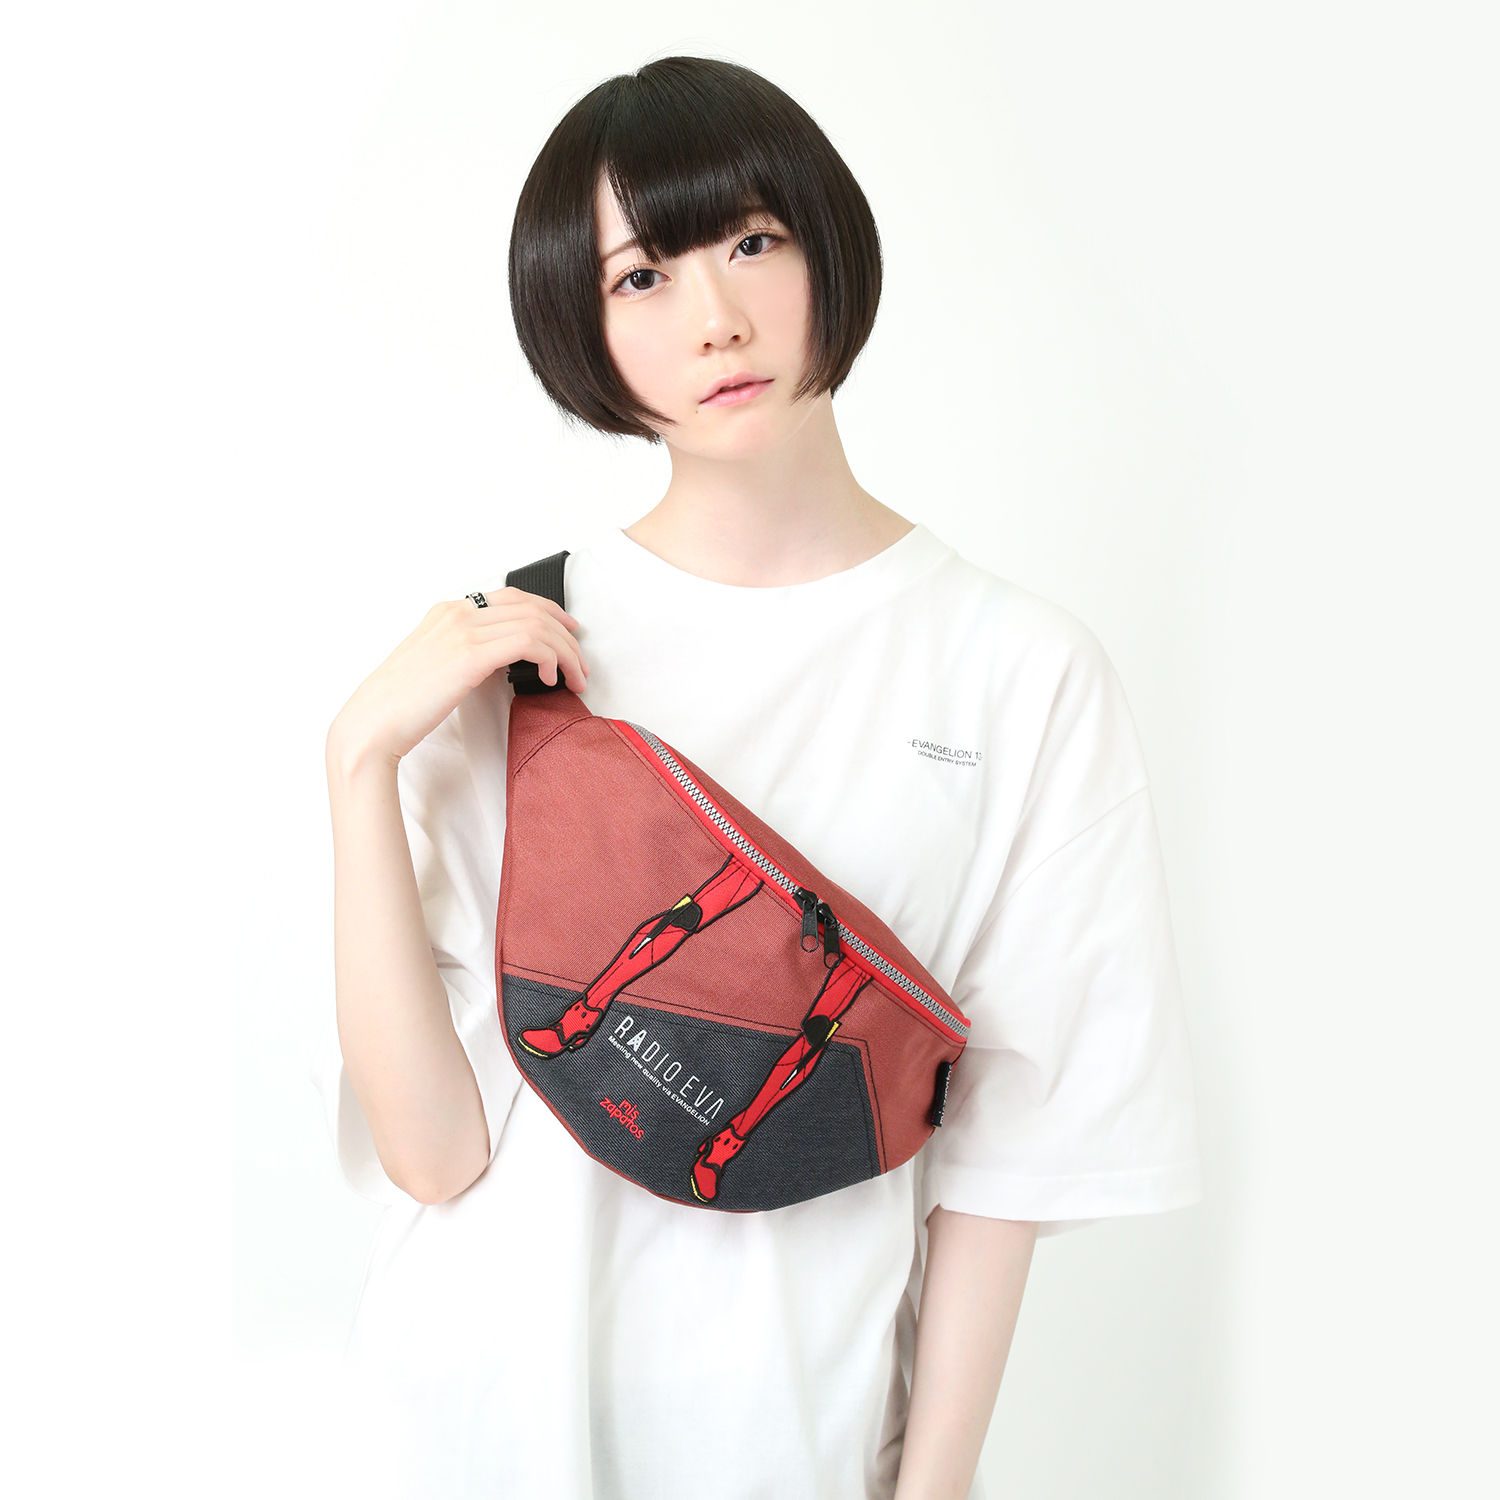 EVANGELION Bicolor Body Bag by mis zapatos (レッド(2号機))